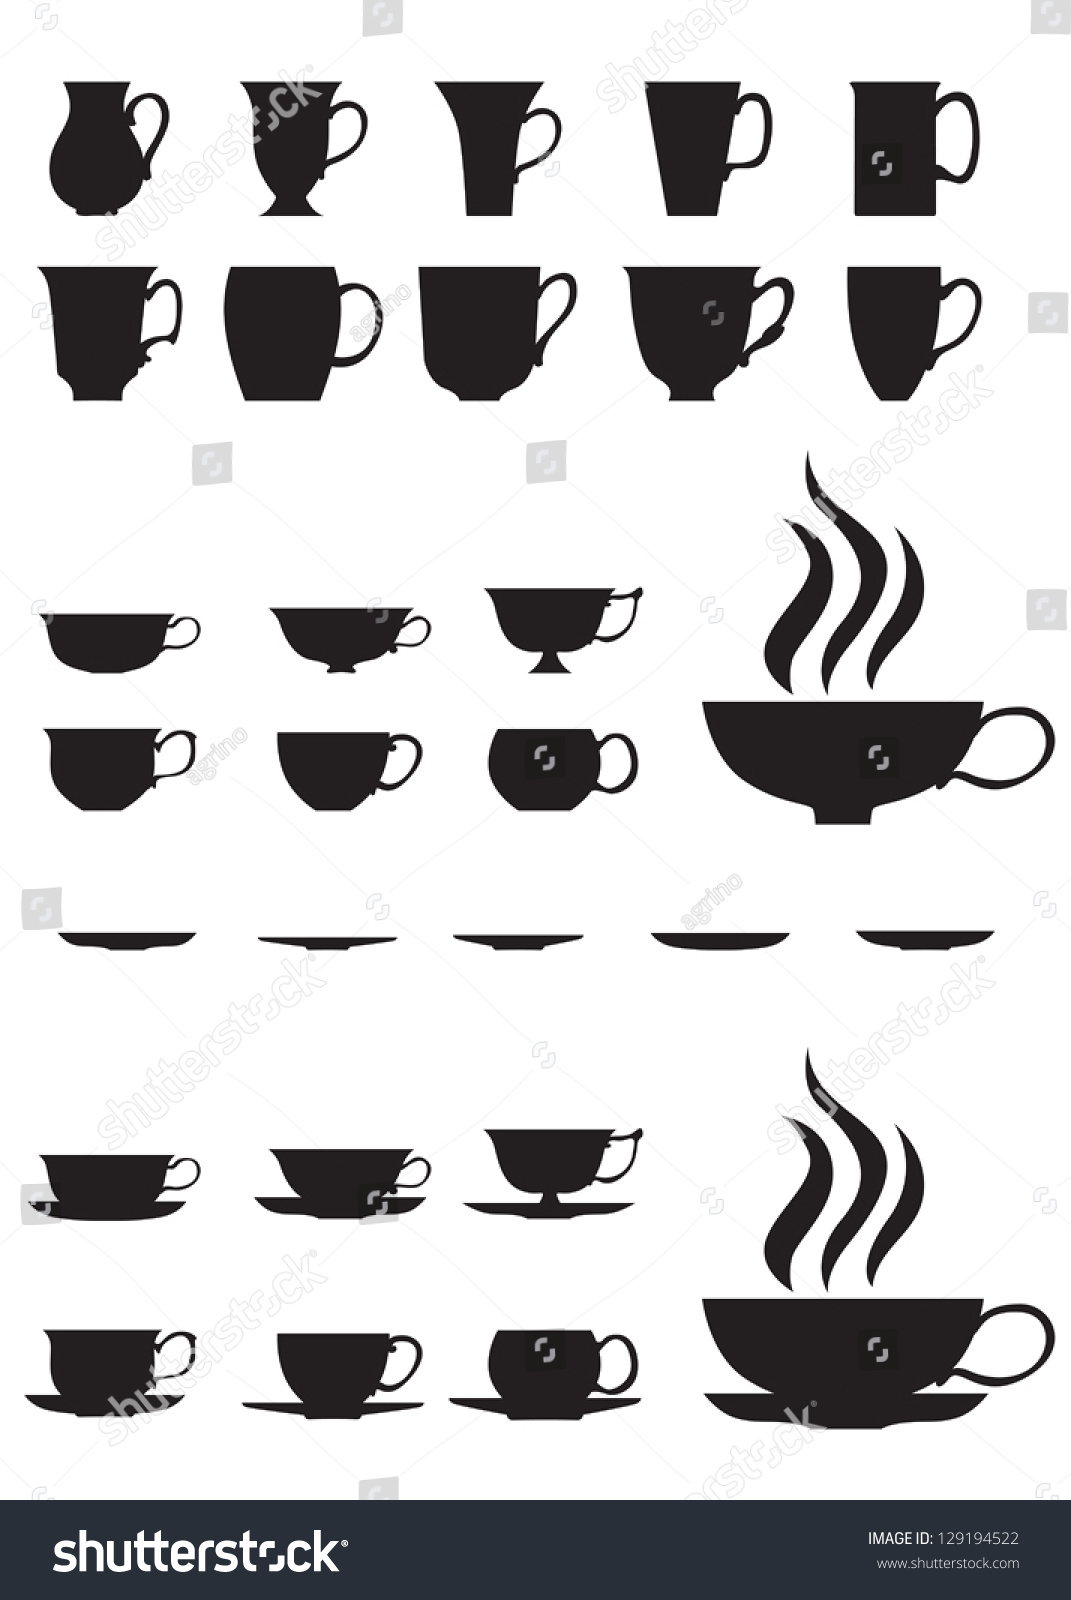 The Silhouettes Of Large And Small Tea Cups And Saucers